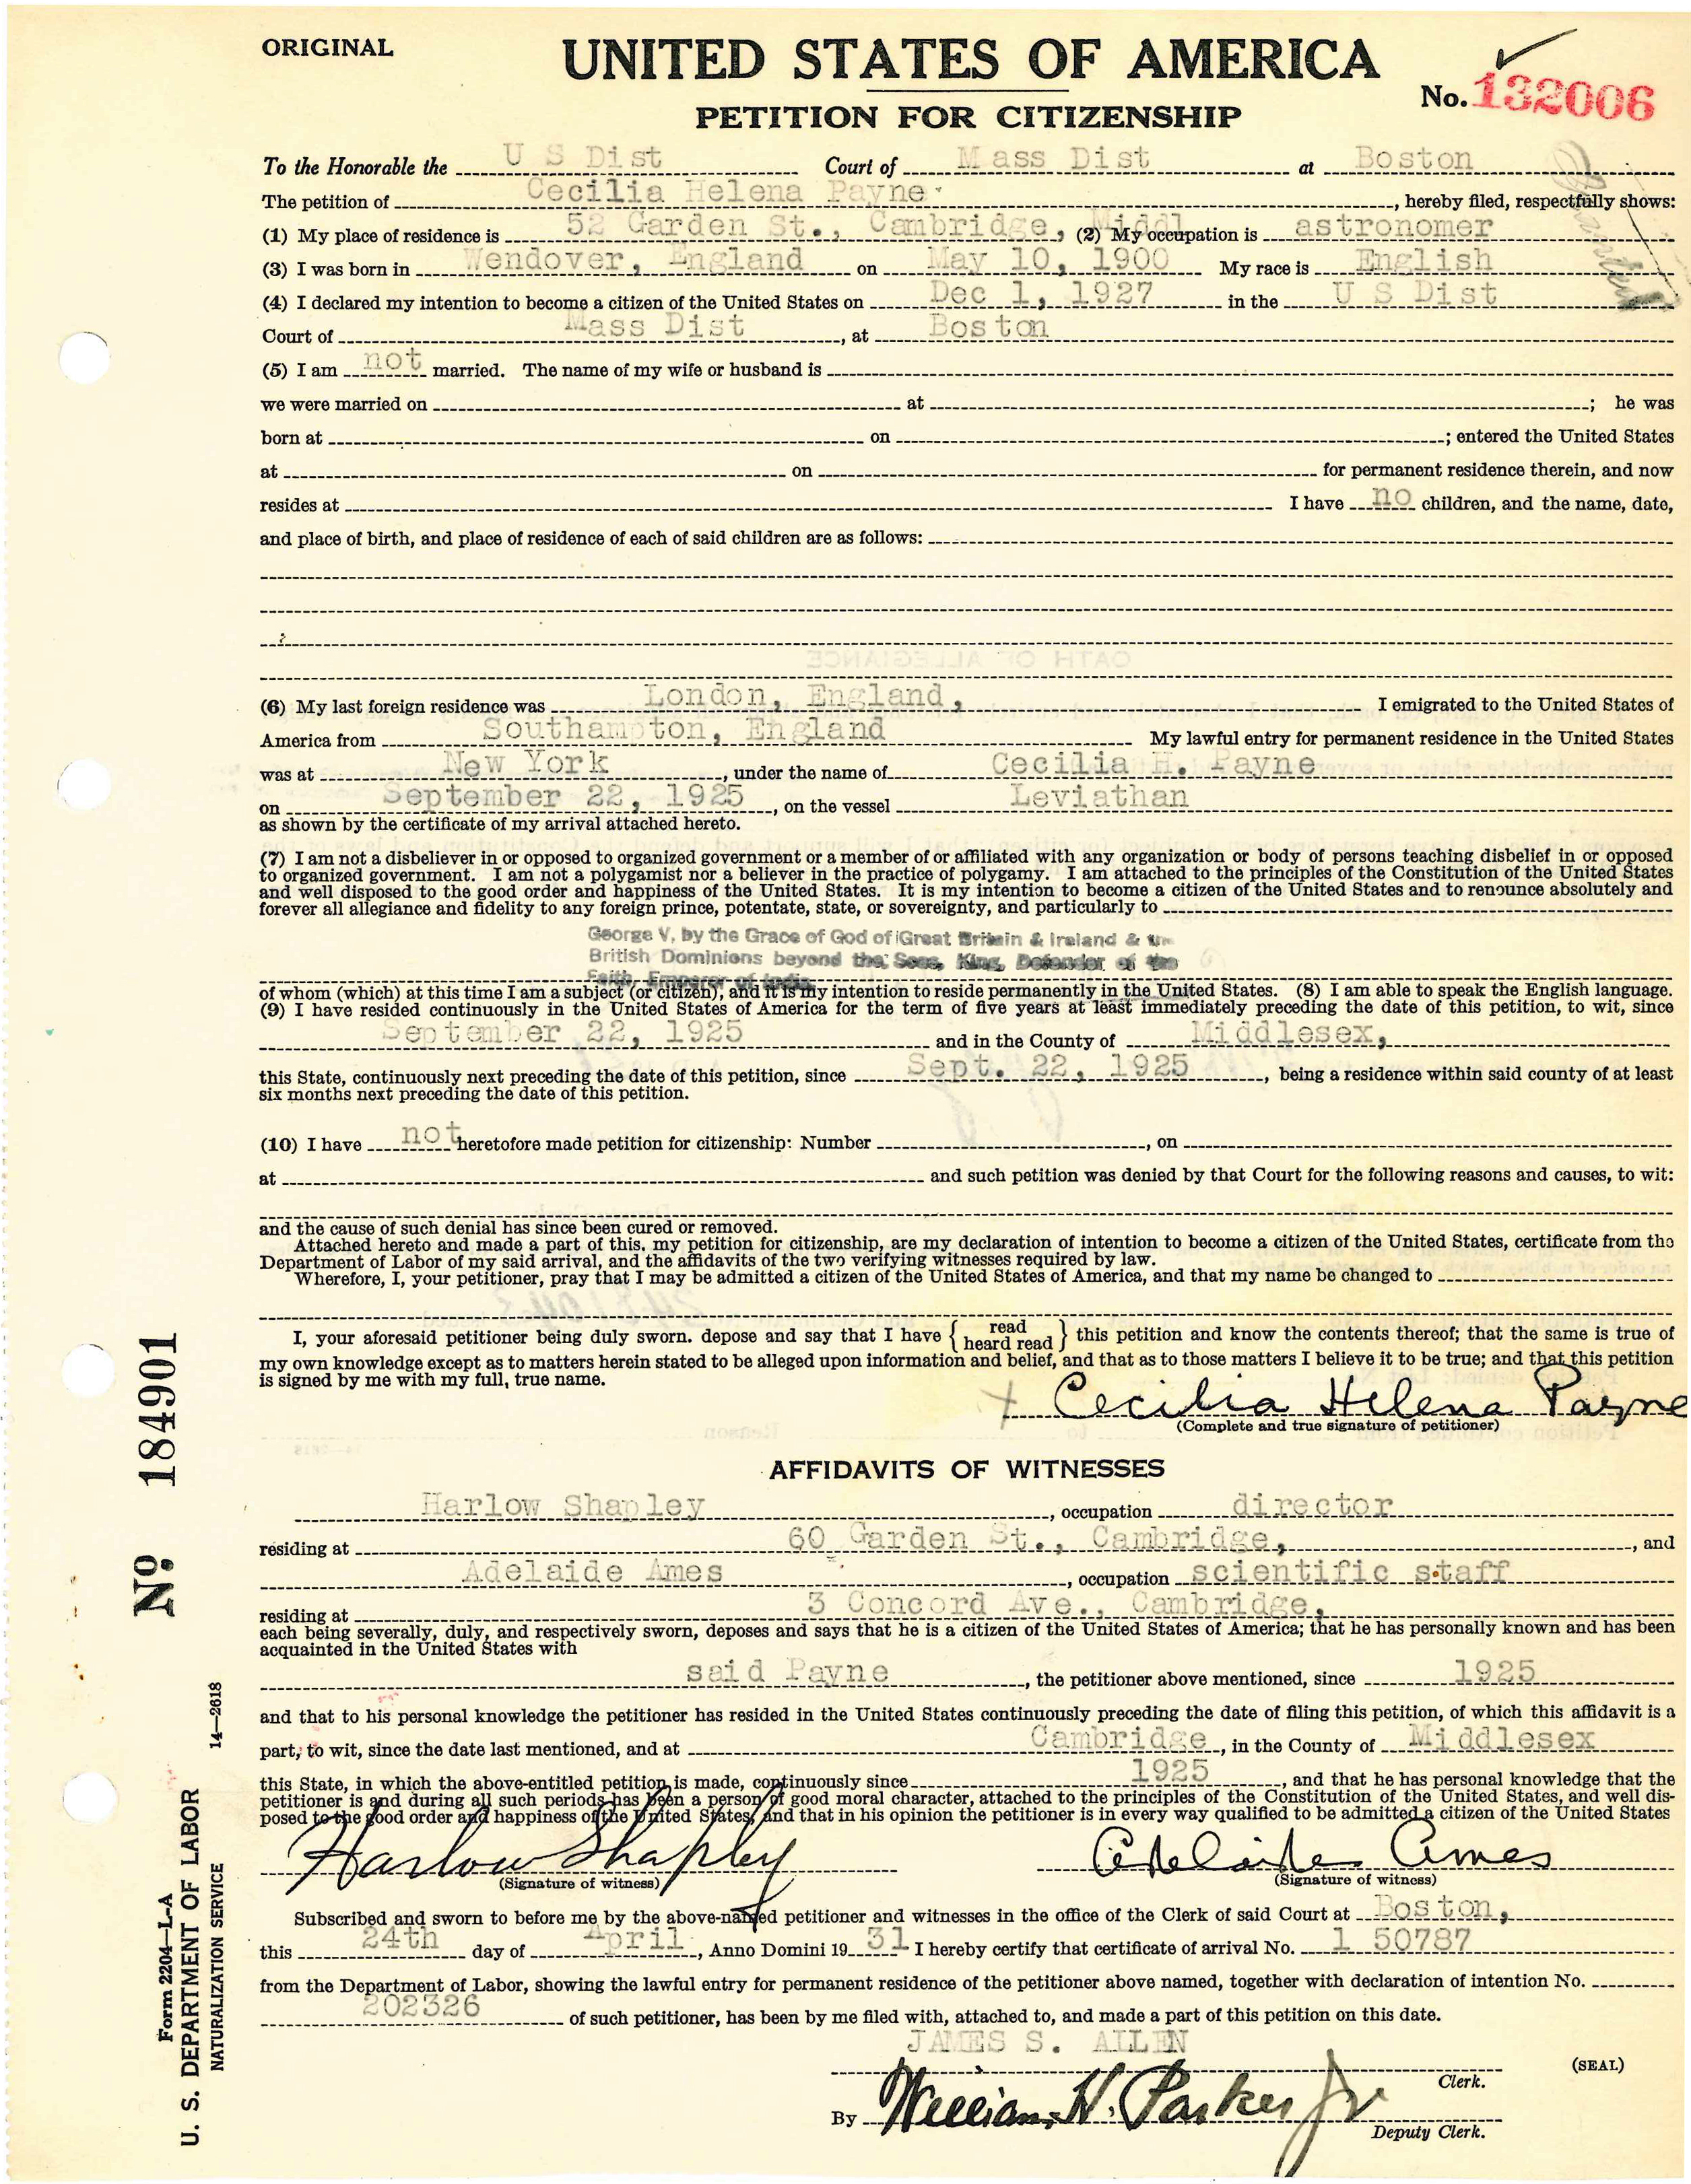 Petition for Citizenship of Cecilia Helena Payne